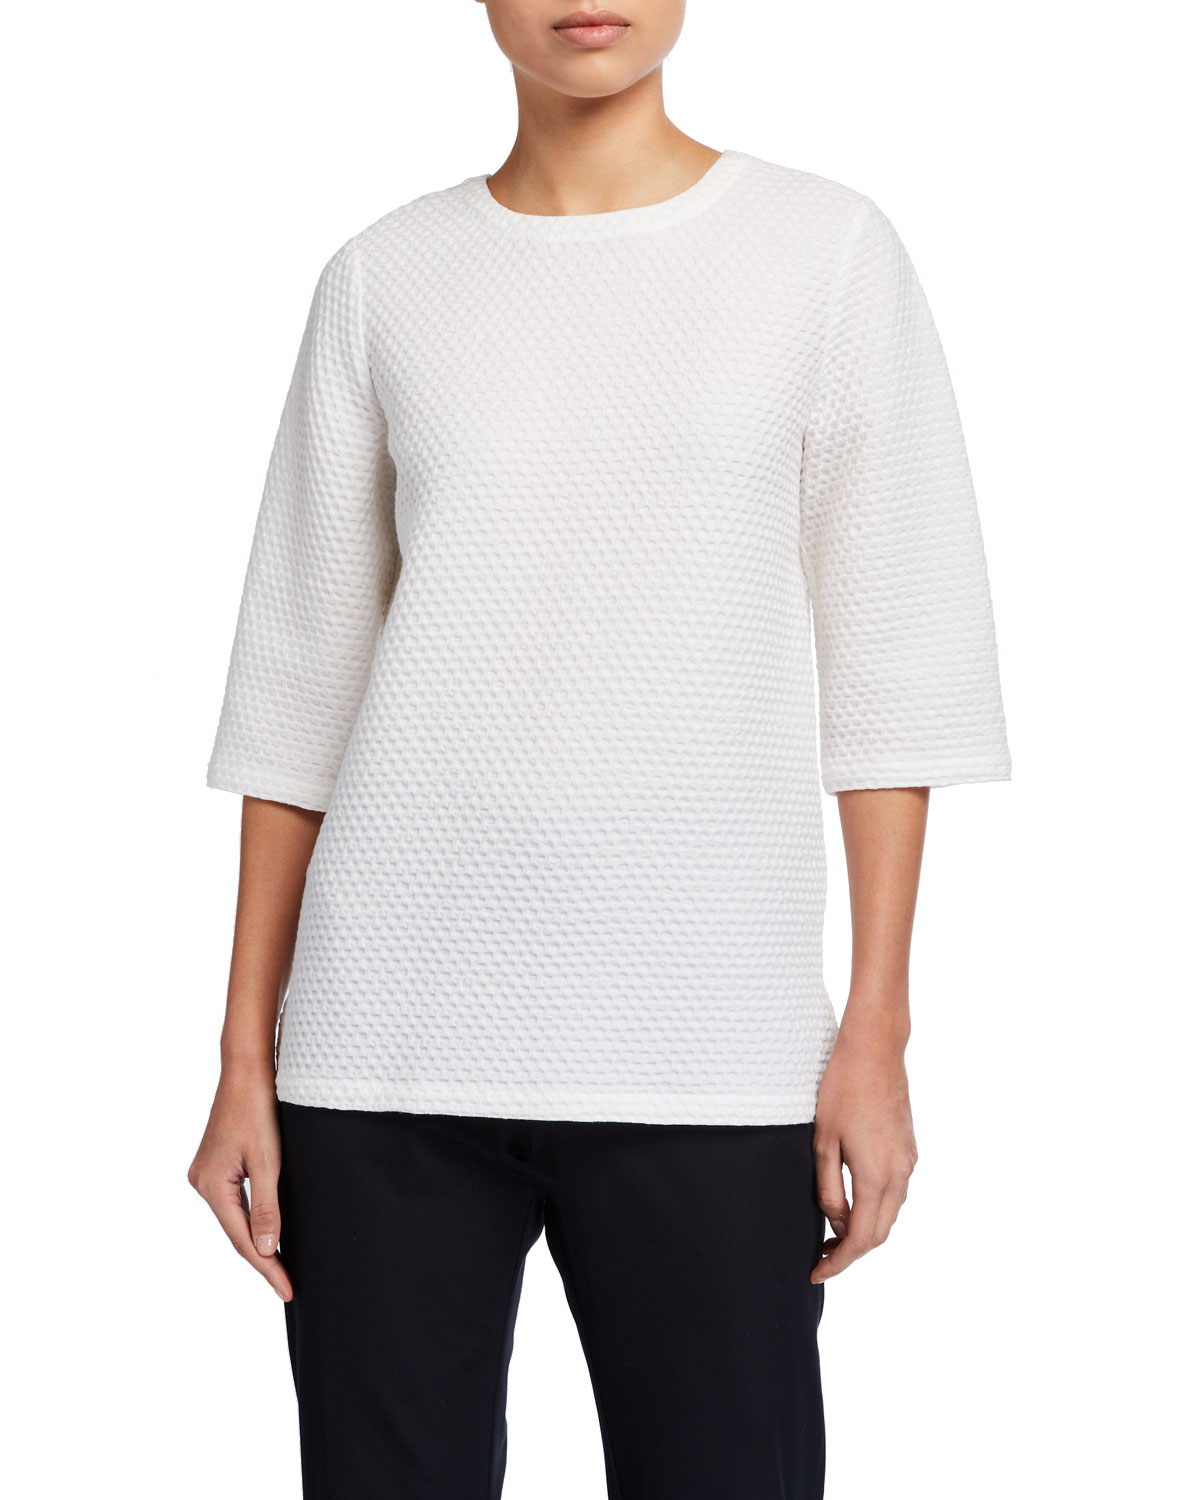 Eileen Fisher Tops PLUS SIZE HONEYCOMB TEXTURED ELBOW-SLEEVE BOXY TOP